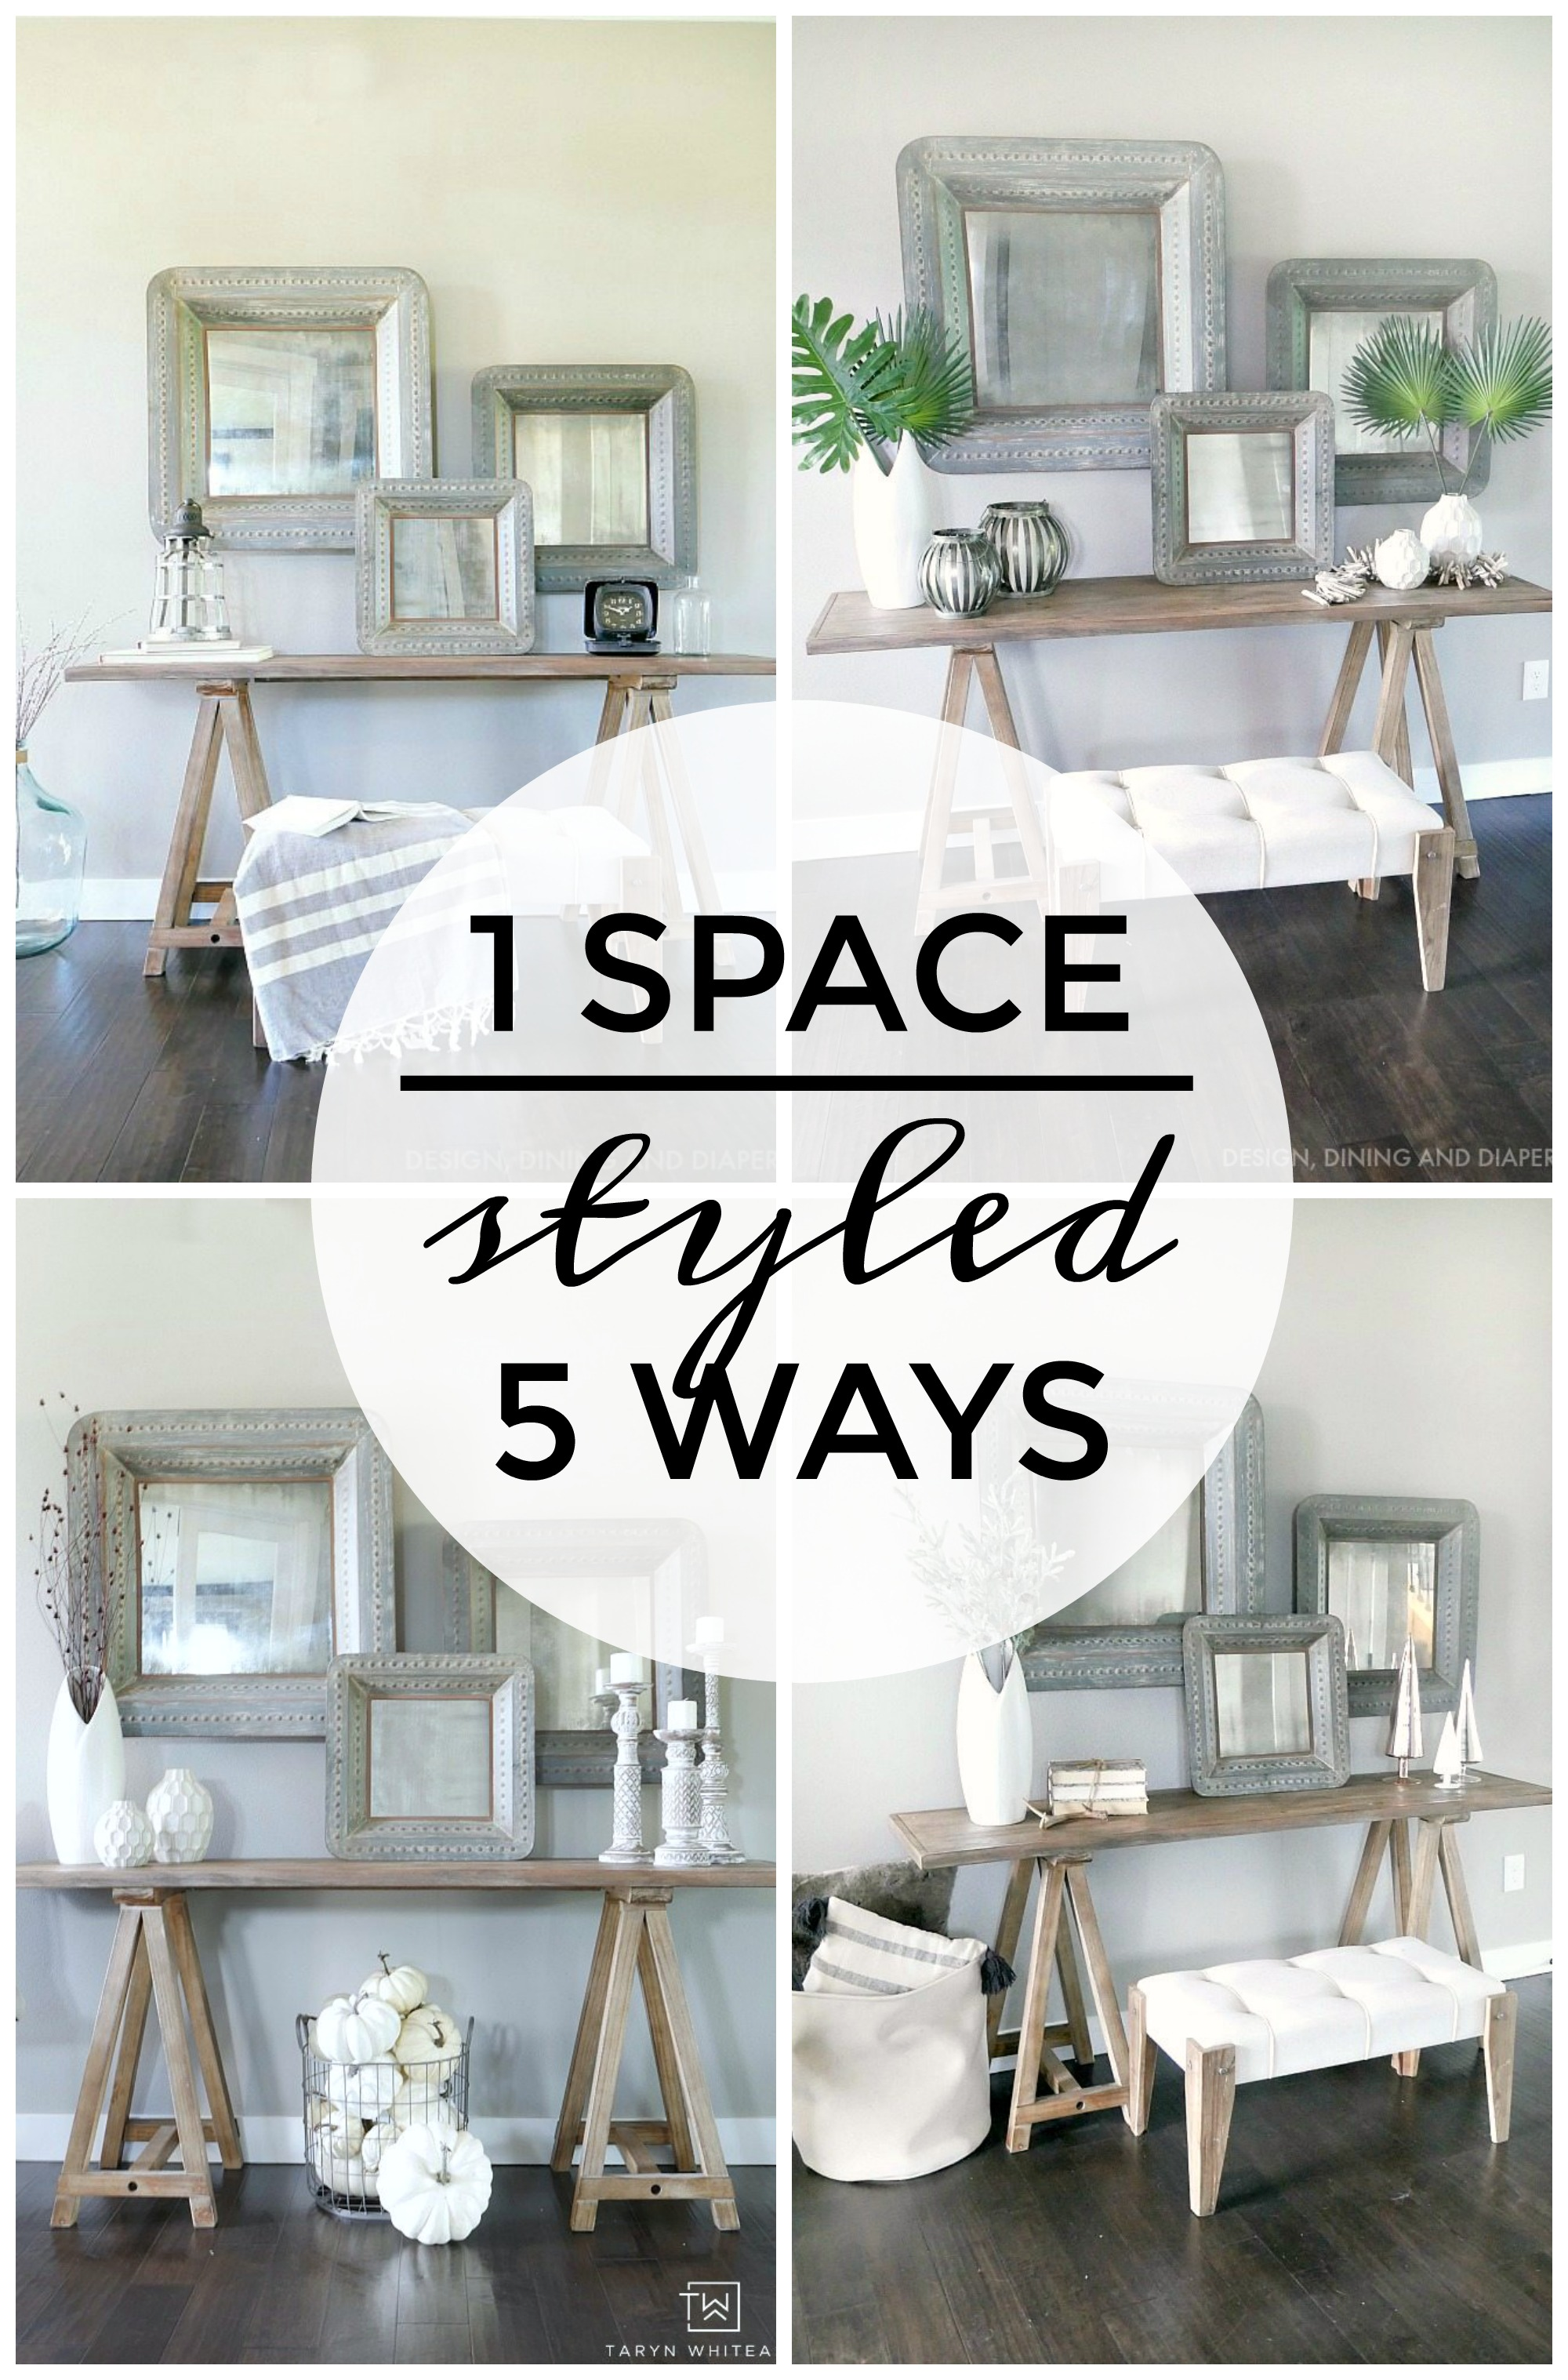 One Space Styled Different Ways - Learn how to make subtle tweaks to your home decor for each season without going overboard!